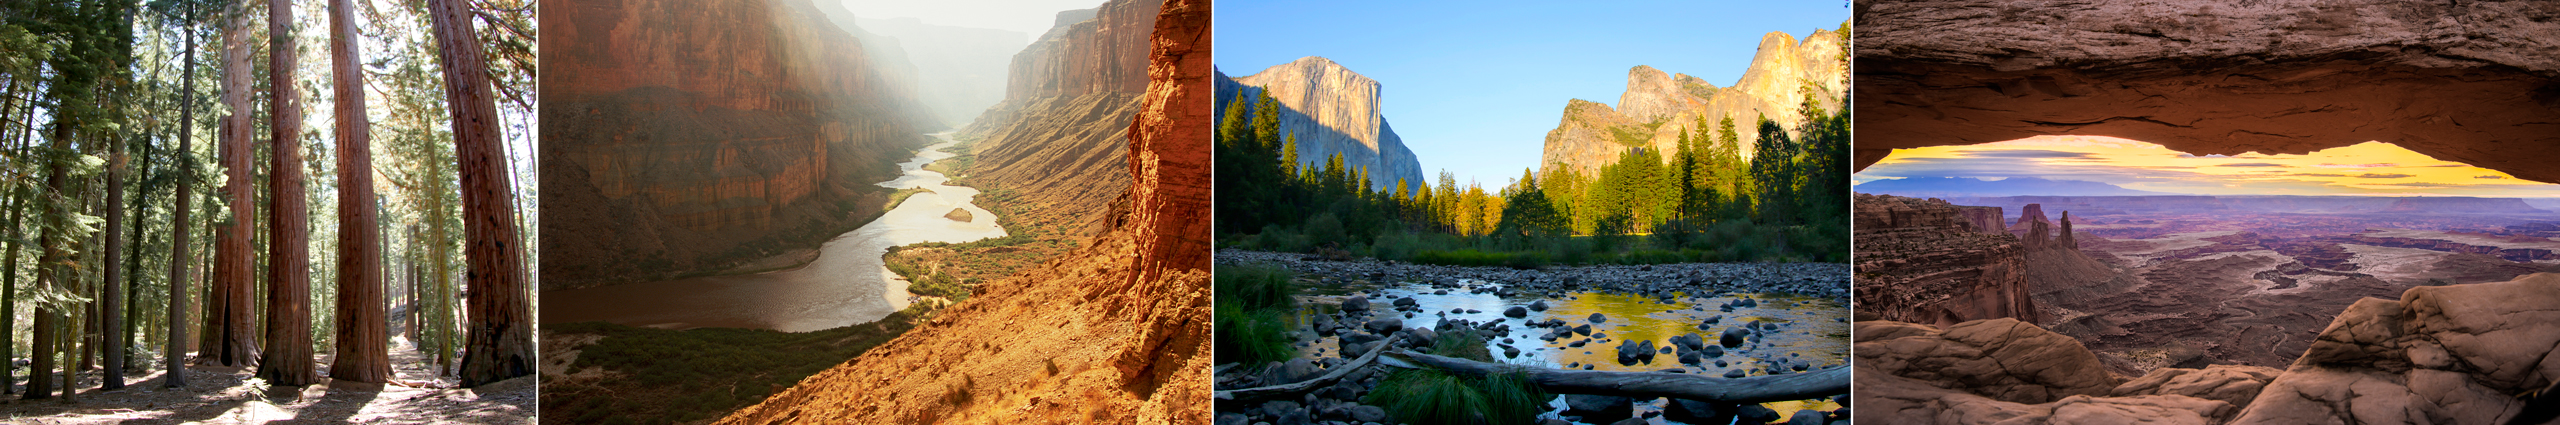 Left to right: Views of the sequoias at Yosemite National Park, the Colorado River at the Grand Canyon, Cathedral Rocks at Yosemite, and the Mesa Arch at Canyonlands National Park